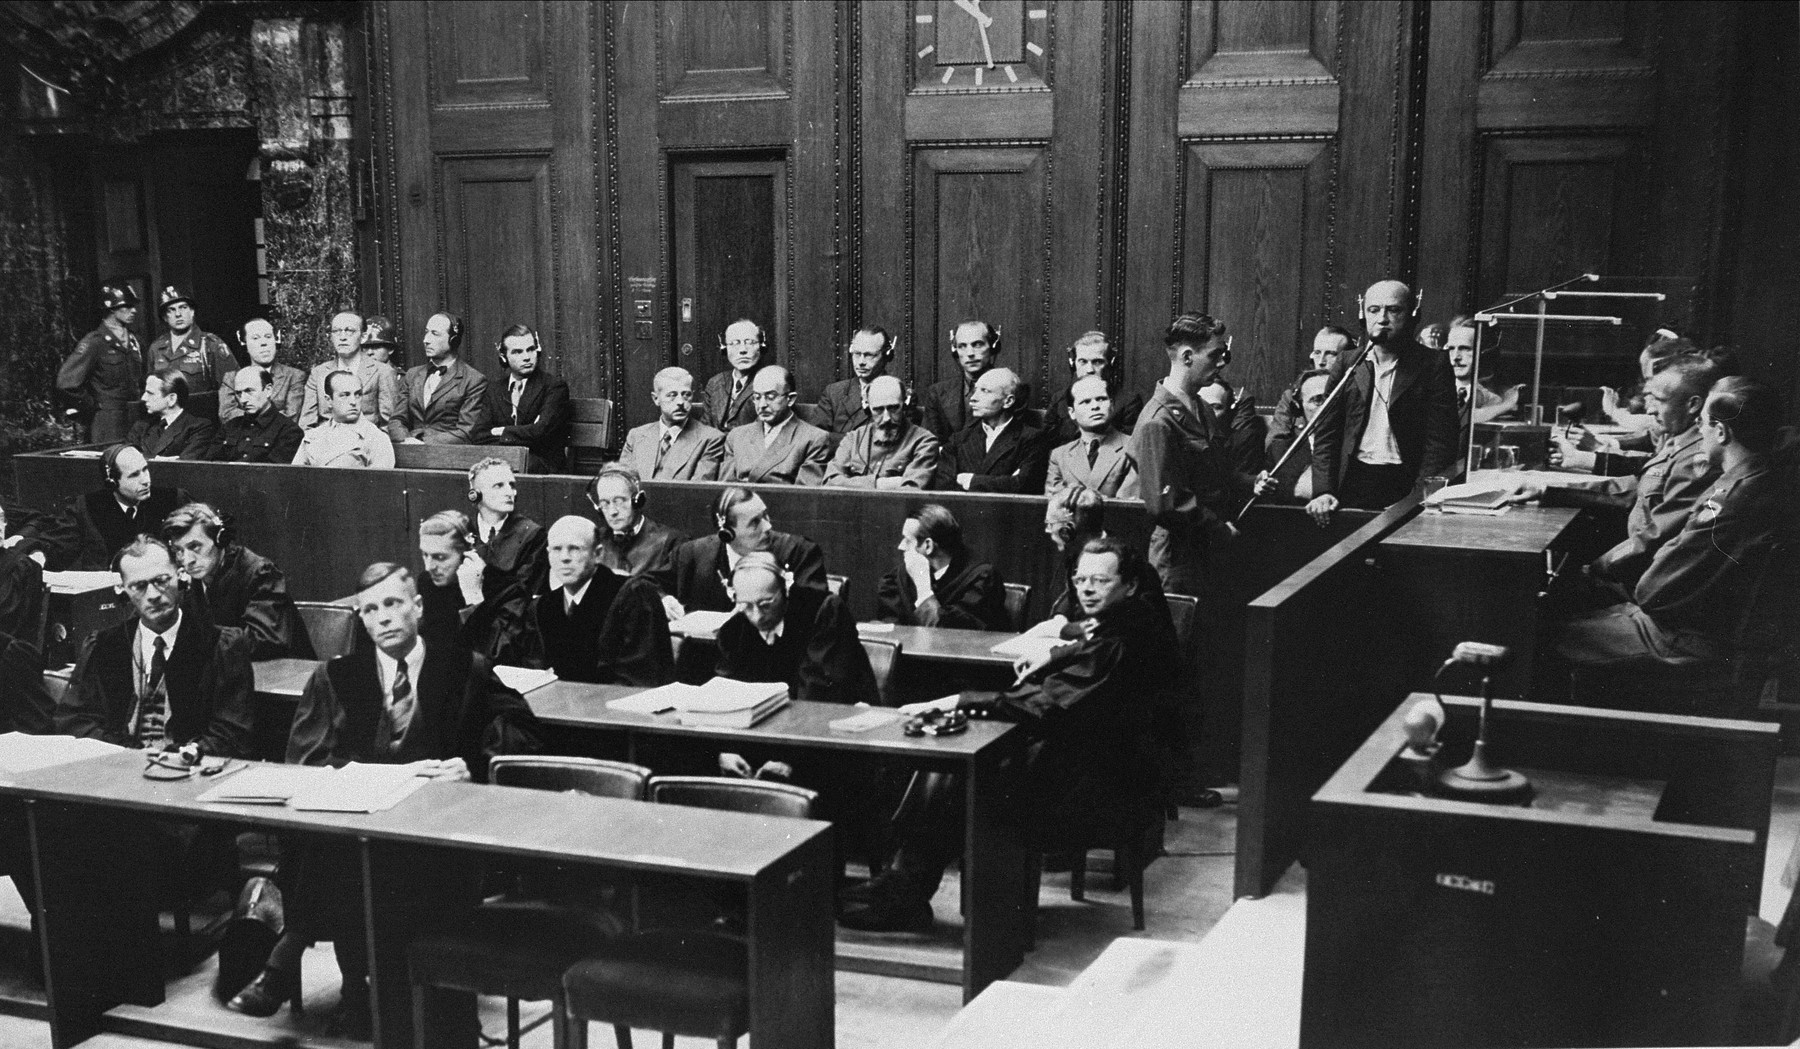 Defendant Ernst Biberstein pleads not guilty during his arraignment at the Einsatzgruppen Trial.